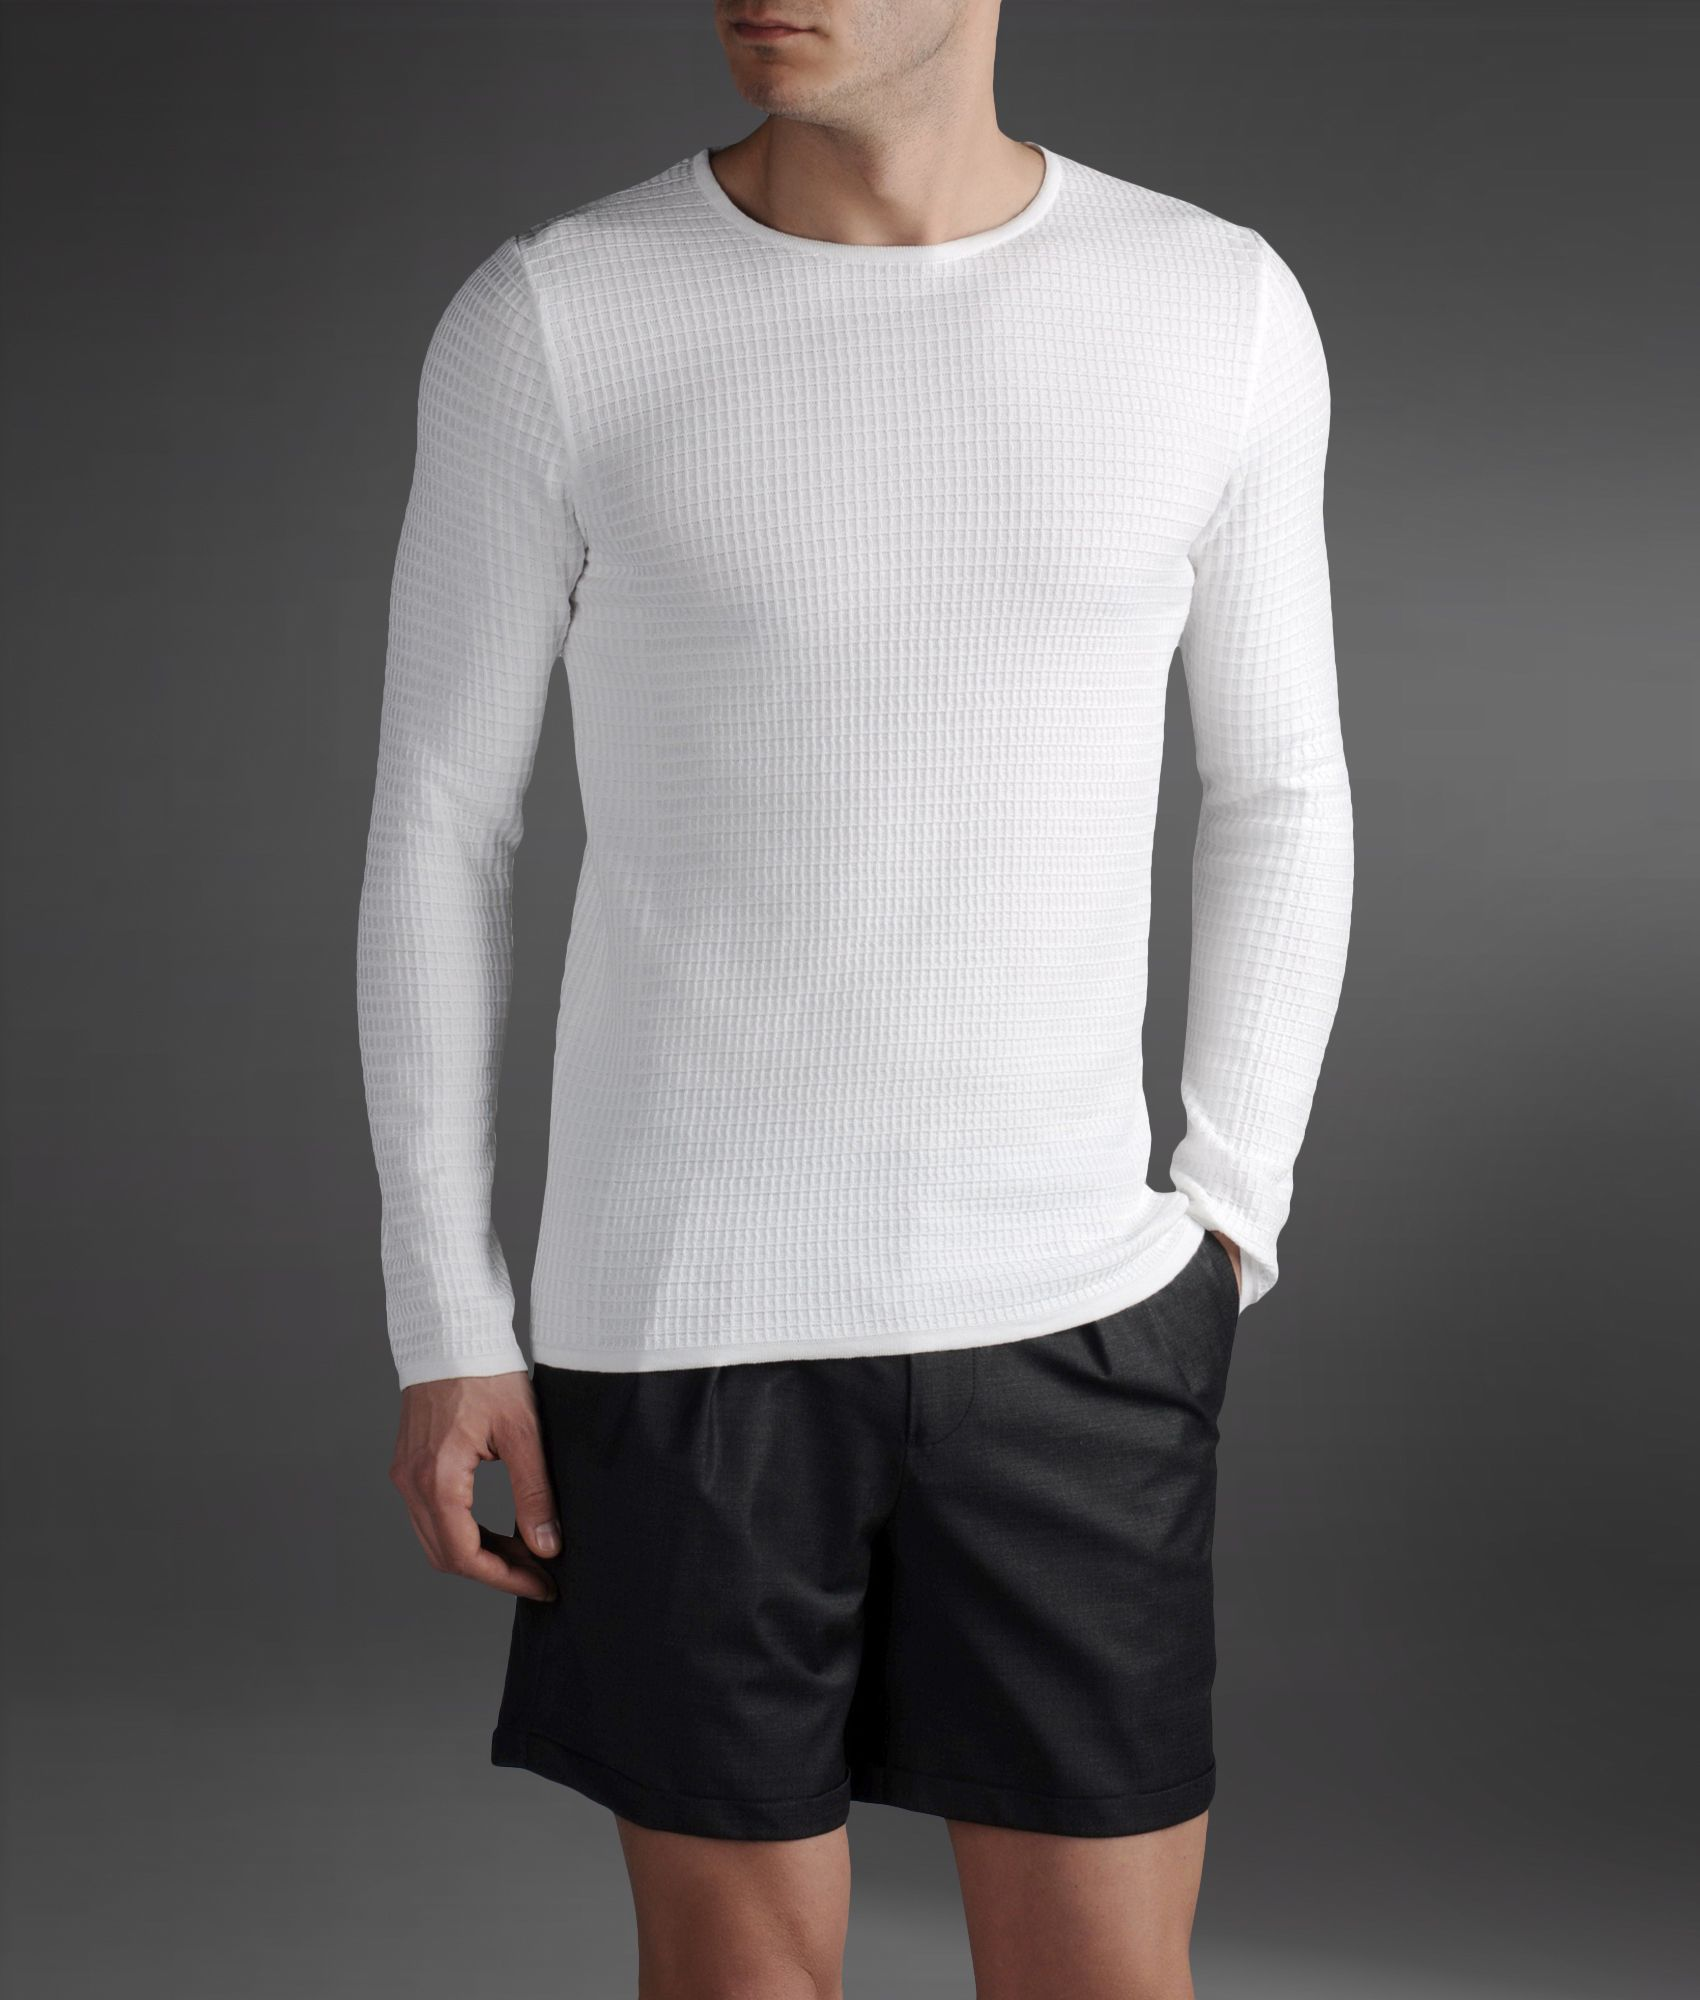 emporio armani sweater in check textured cotton in white for men lyst. Black Bedroom Furniture Sets. Home Design Ideas